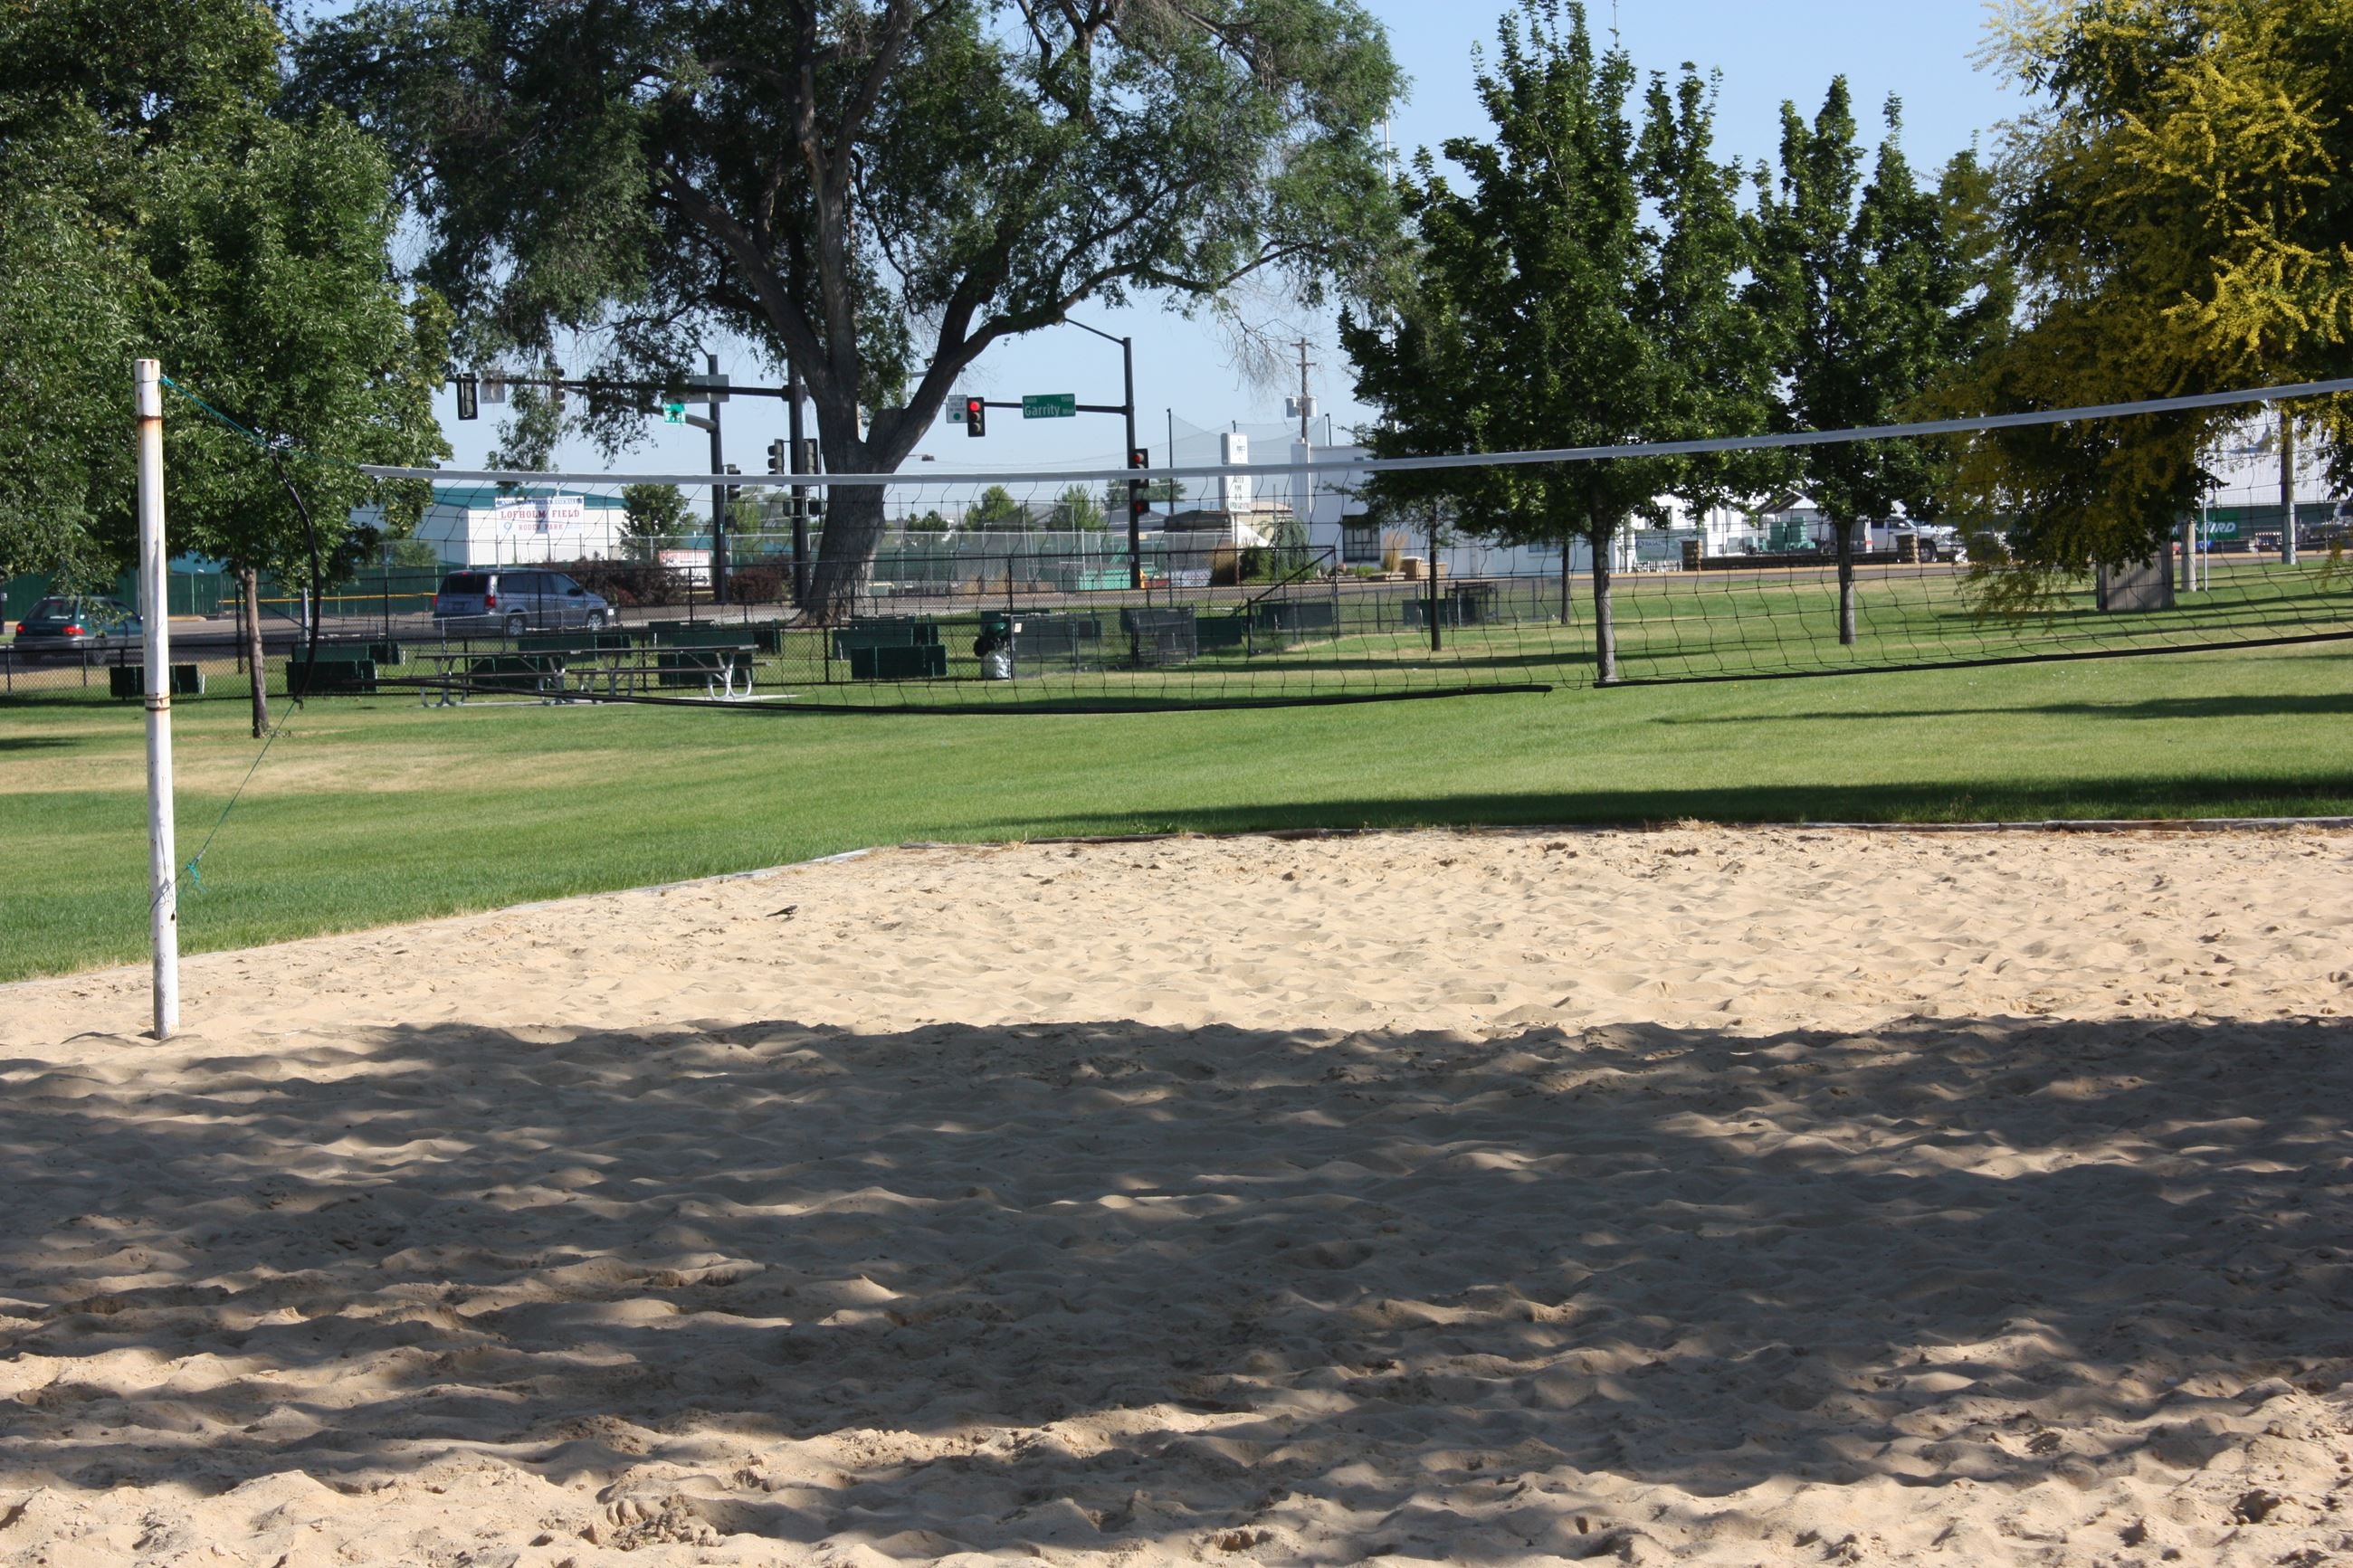 Sand volleyball court at Lakeview Park